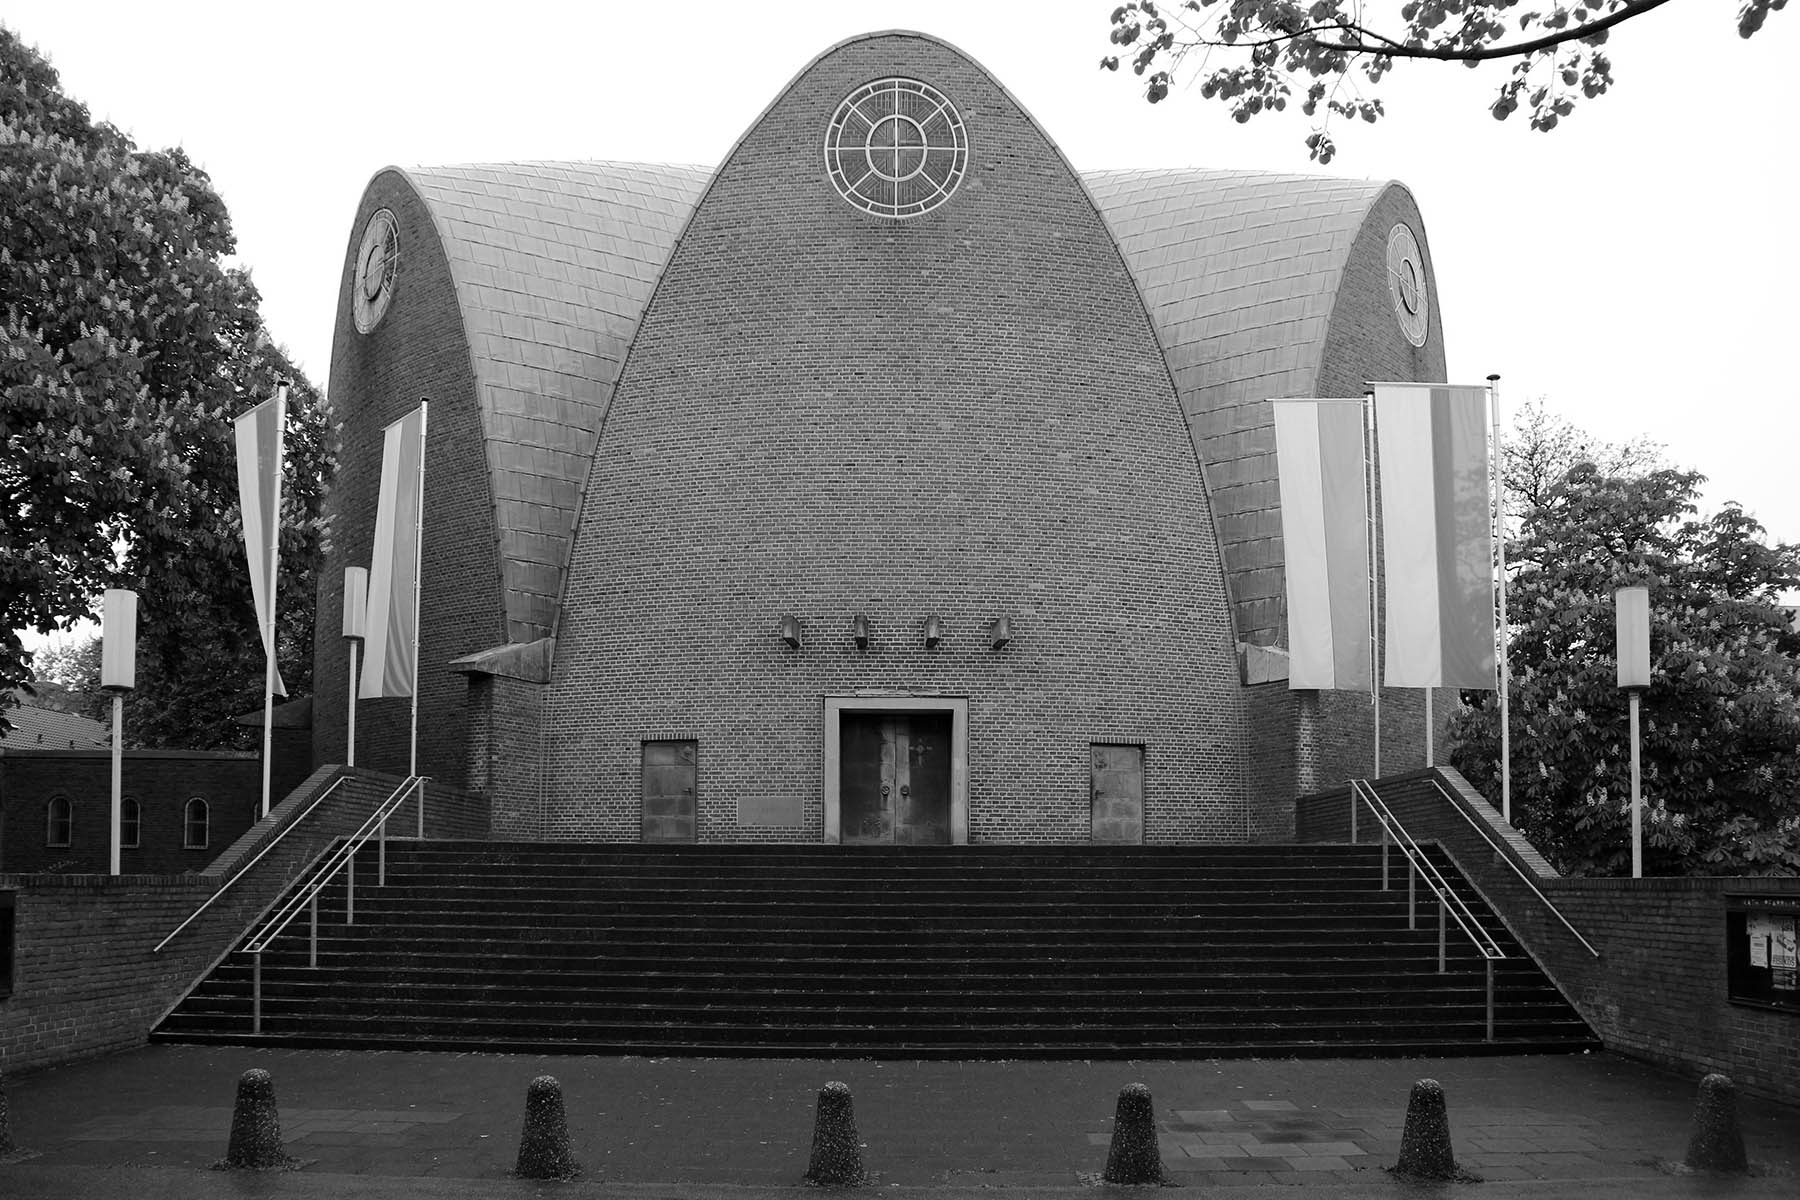 St. Engelbert.  Catholic church by Dominikus Böhm. Completion: 1932. Riehler Gürtel 23, 50735 Köln-Riehl